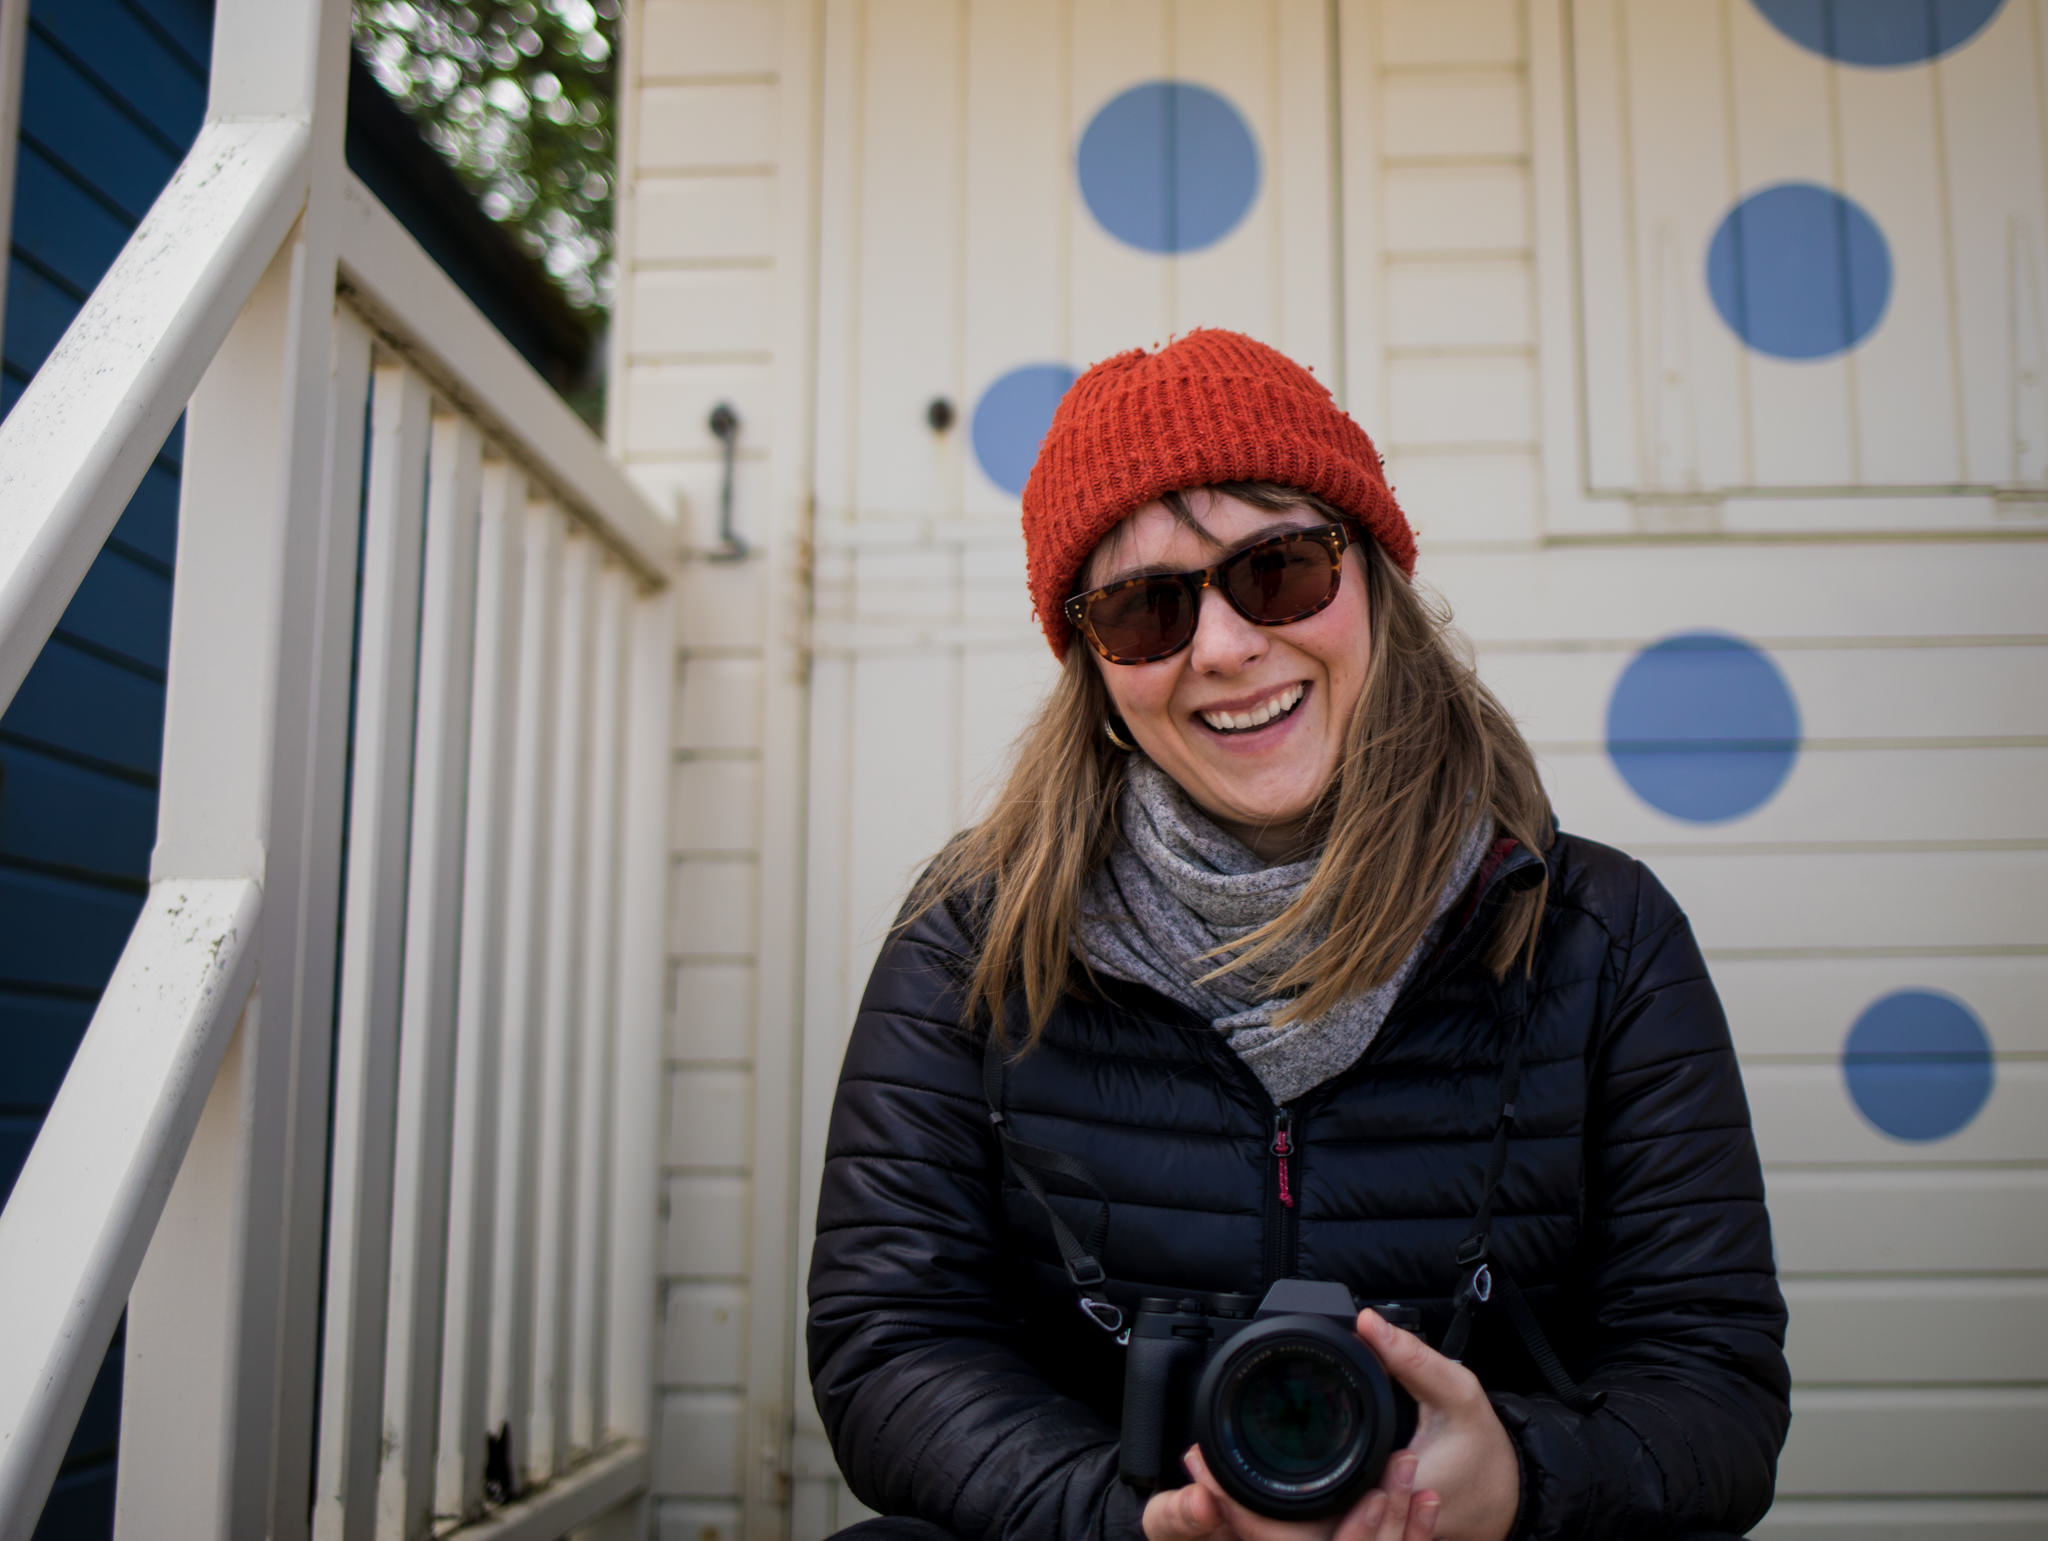 Picture of Alice Lodge at SNAP photo festival in 2018